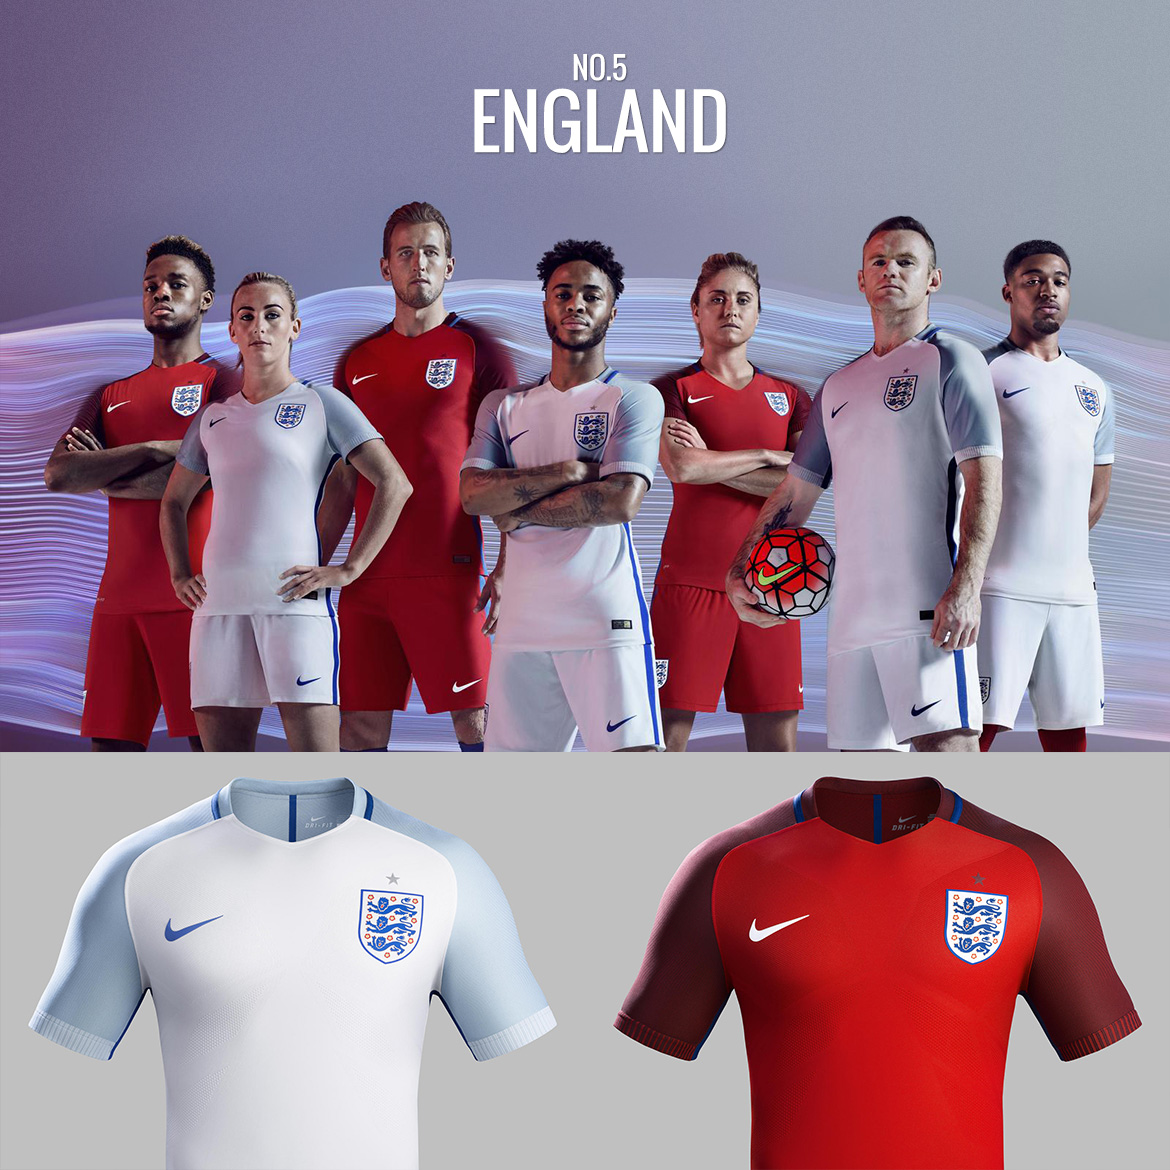 UEFA Euro 2016 - England - Football Kit Design